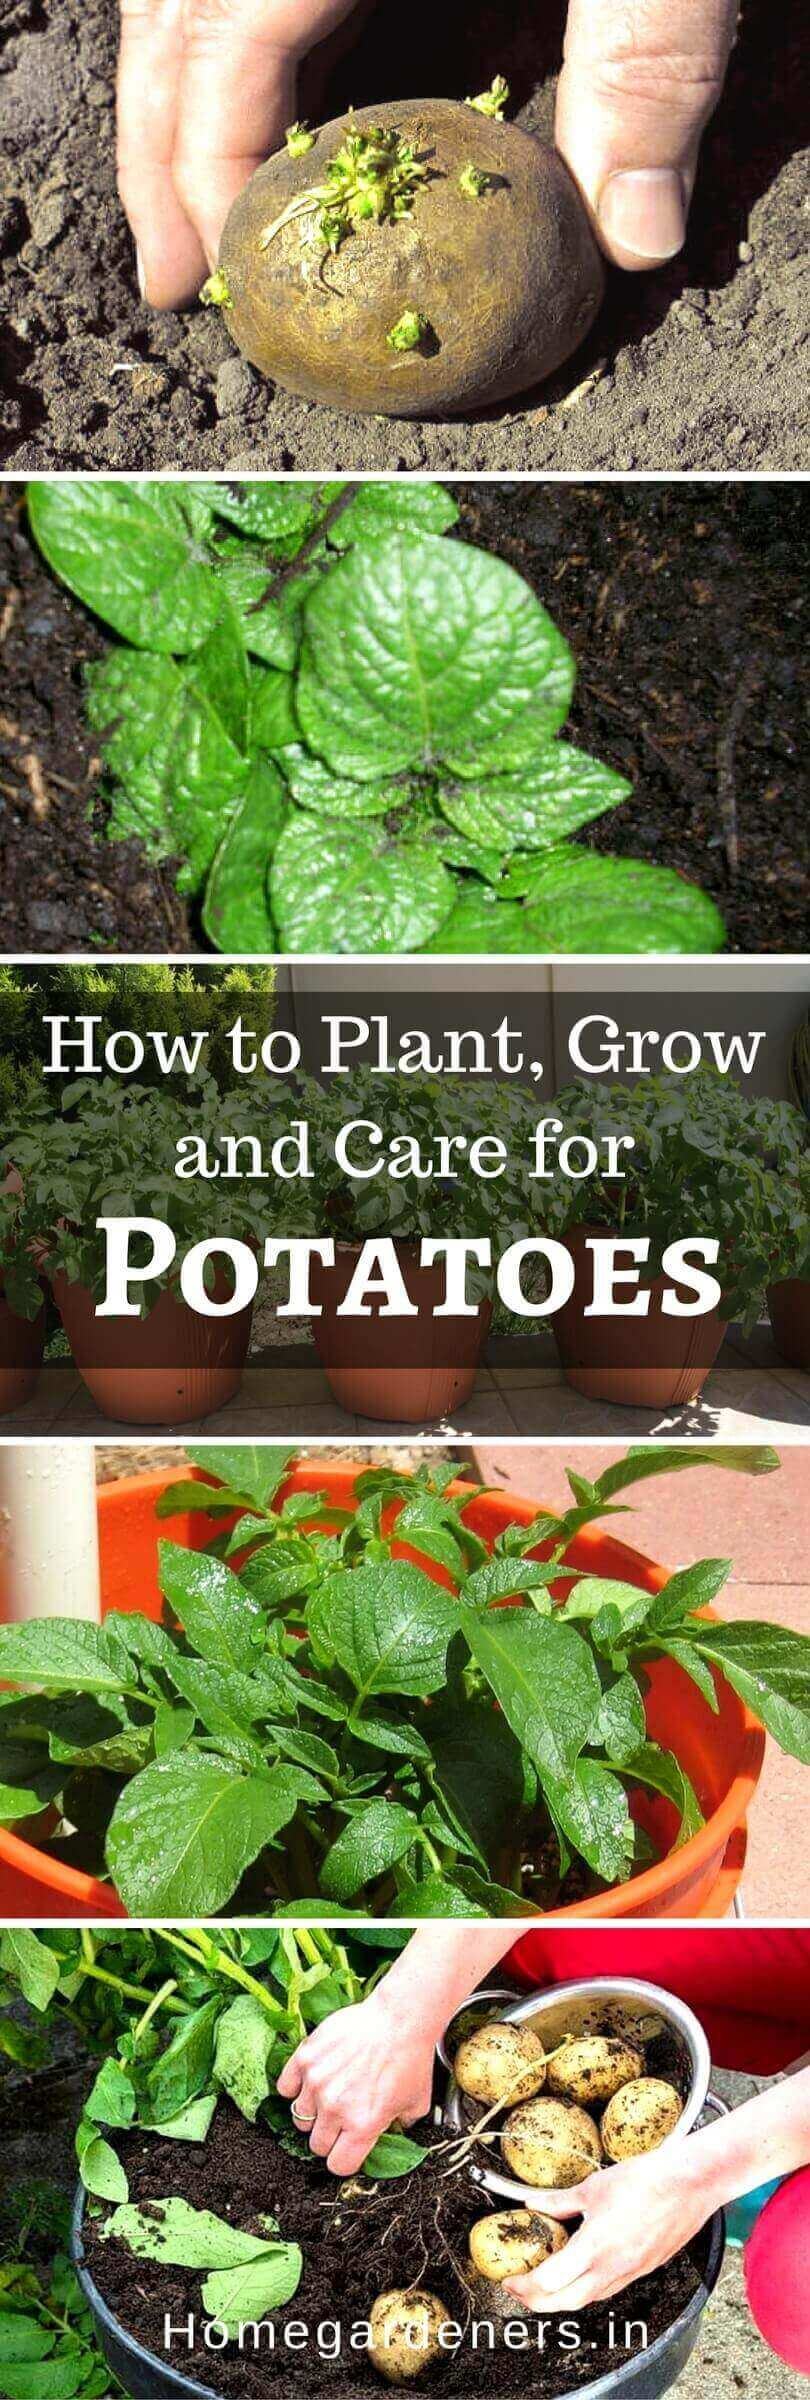 How to Plant, Grow and Care for Potatoes Easily